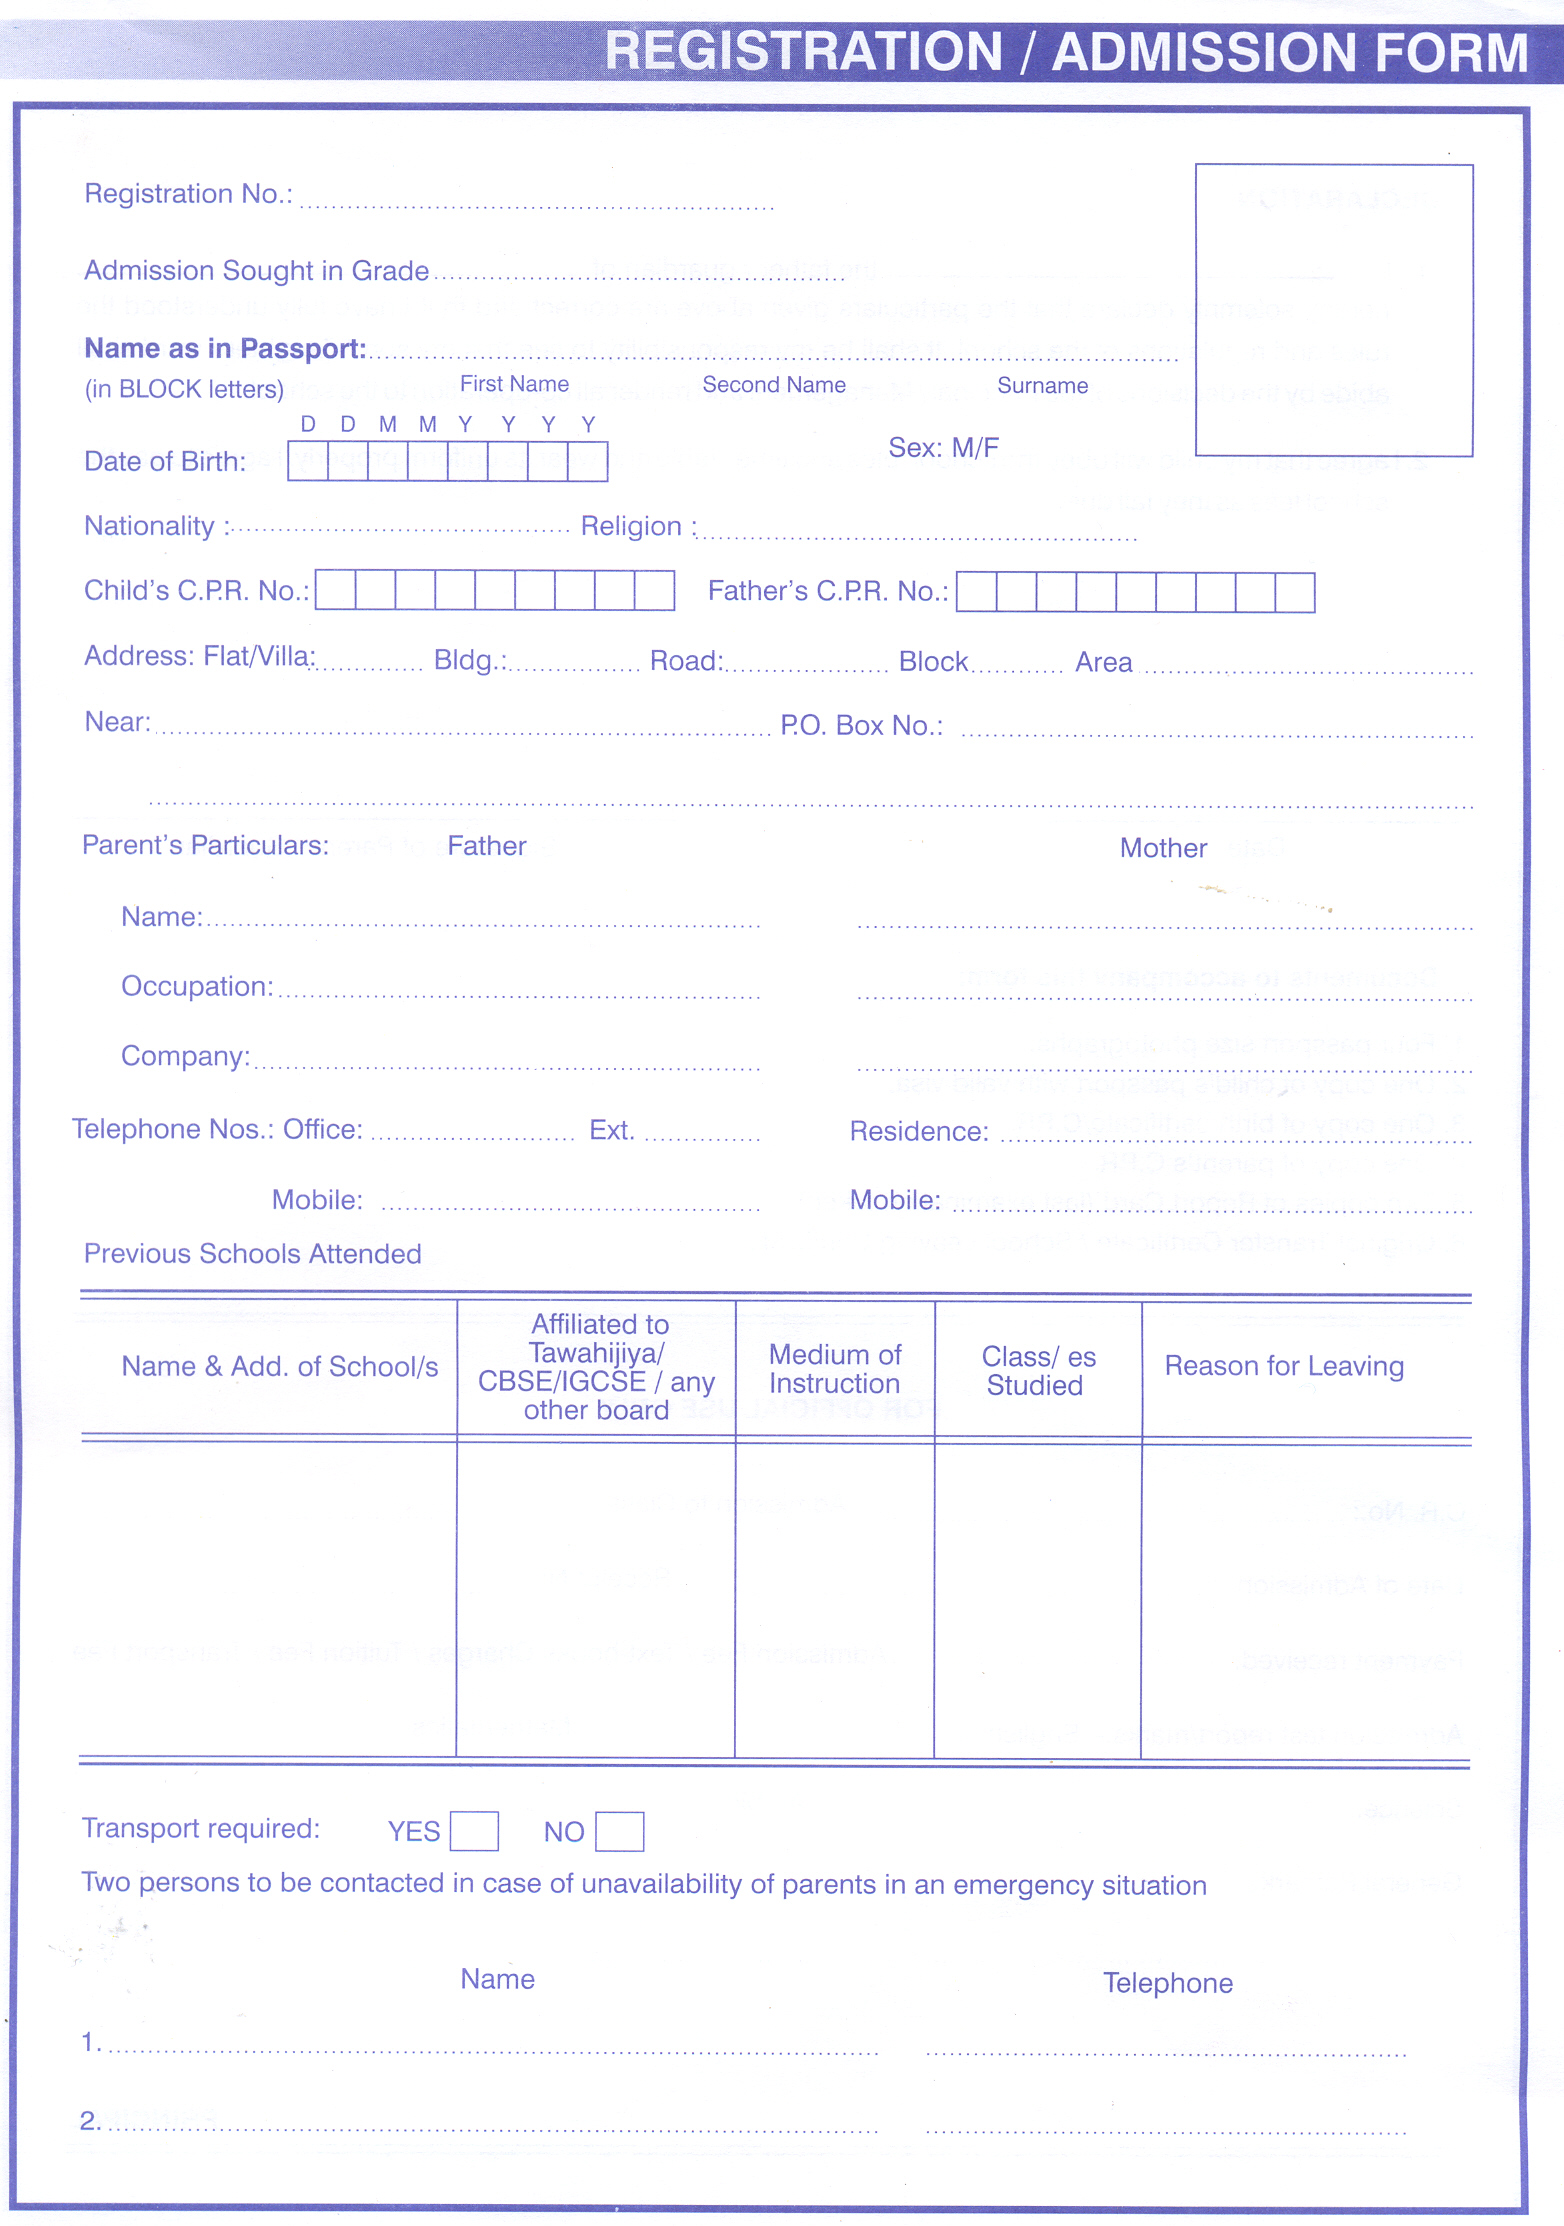 Admission Form Main Page ...  Admission Form School